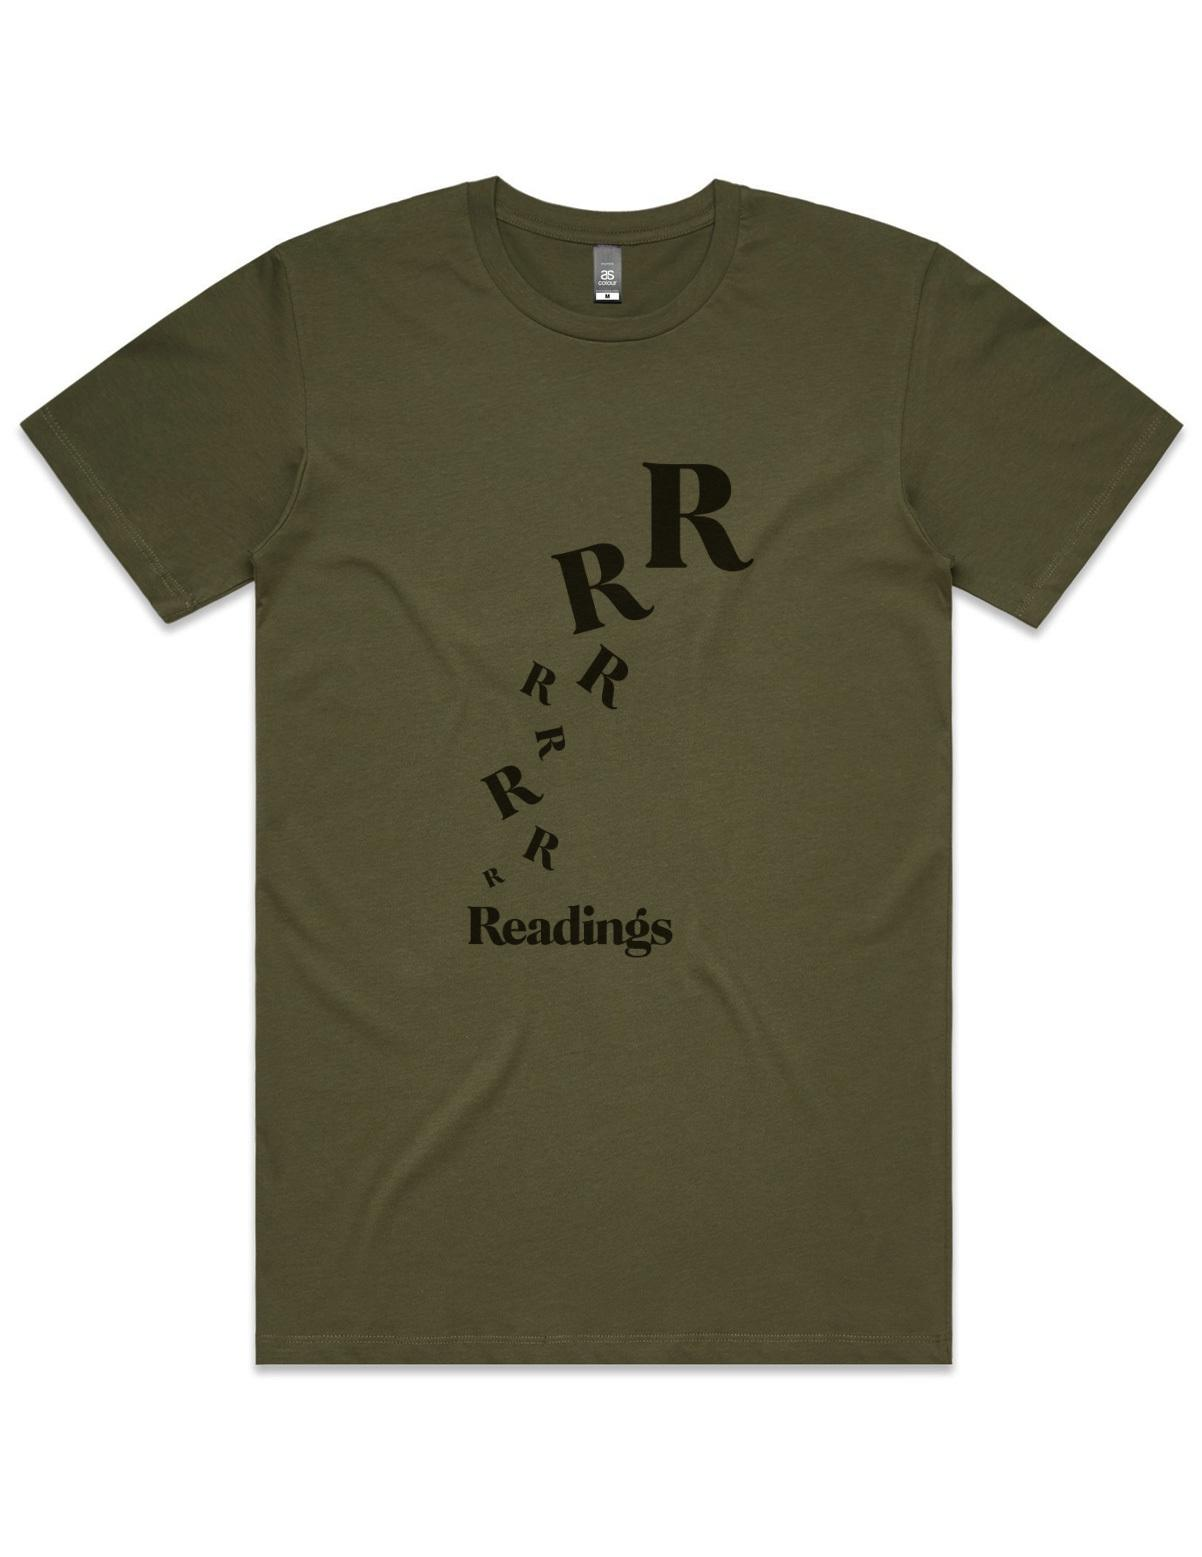 Flying Rs T-Shirt Army Green (XL, Unisex)